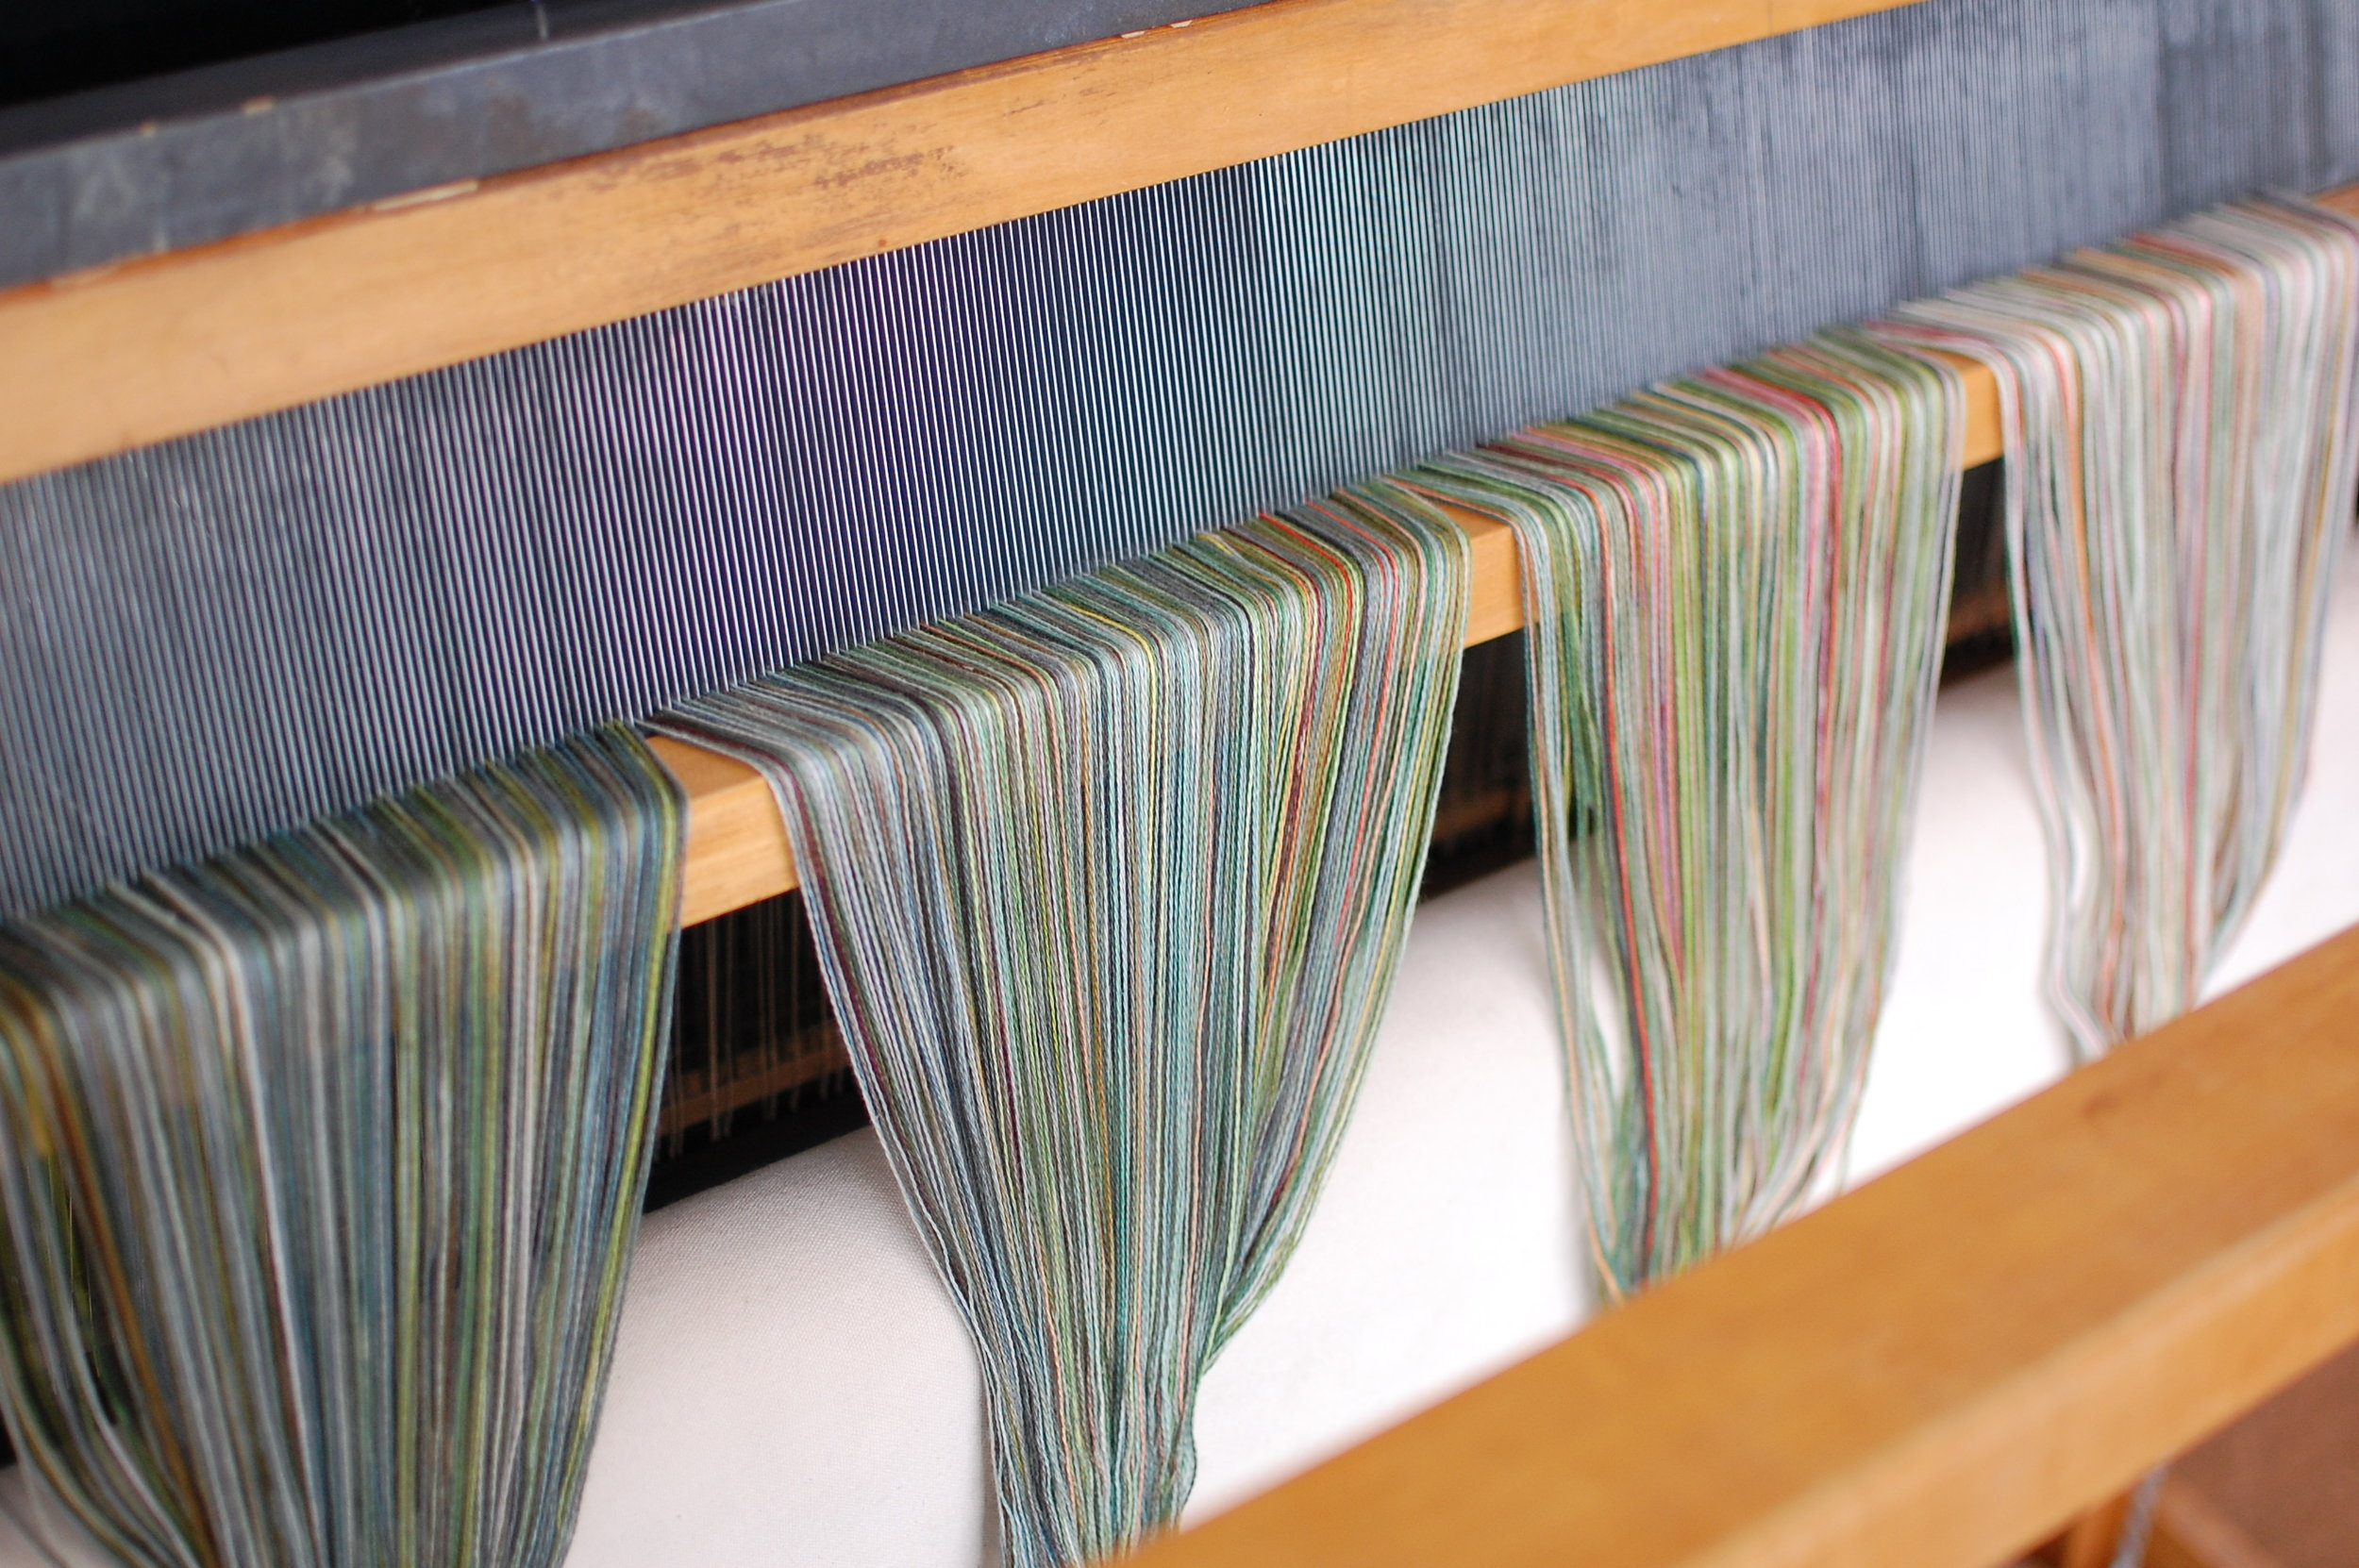 a view at the front of the loom after sleying the reed